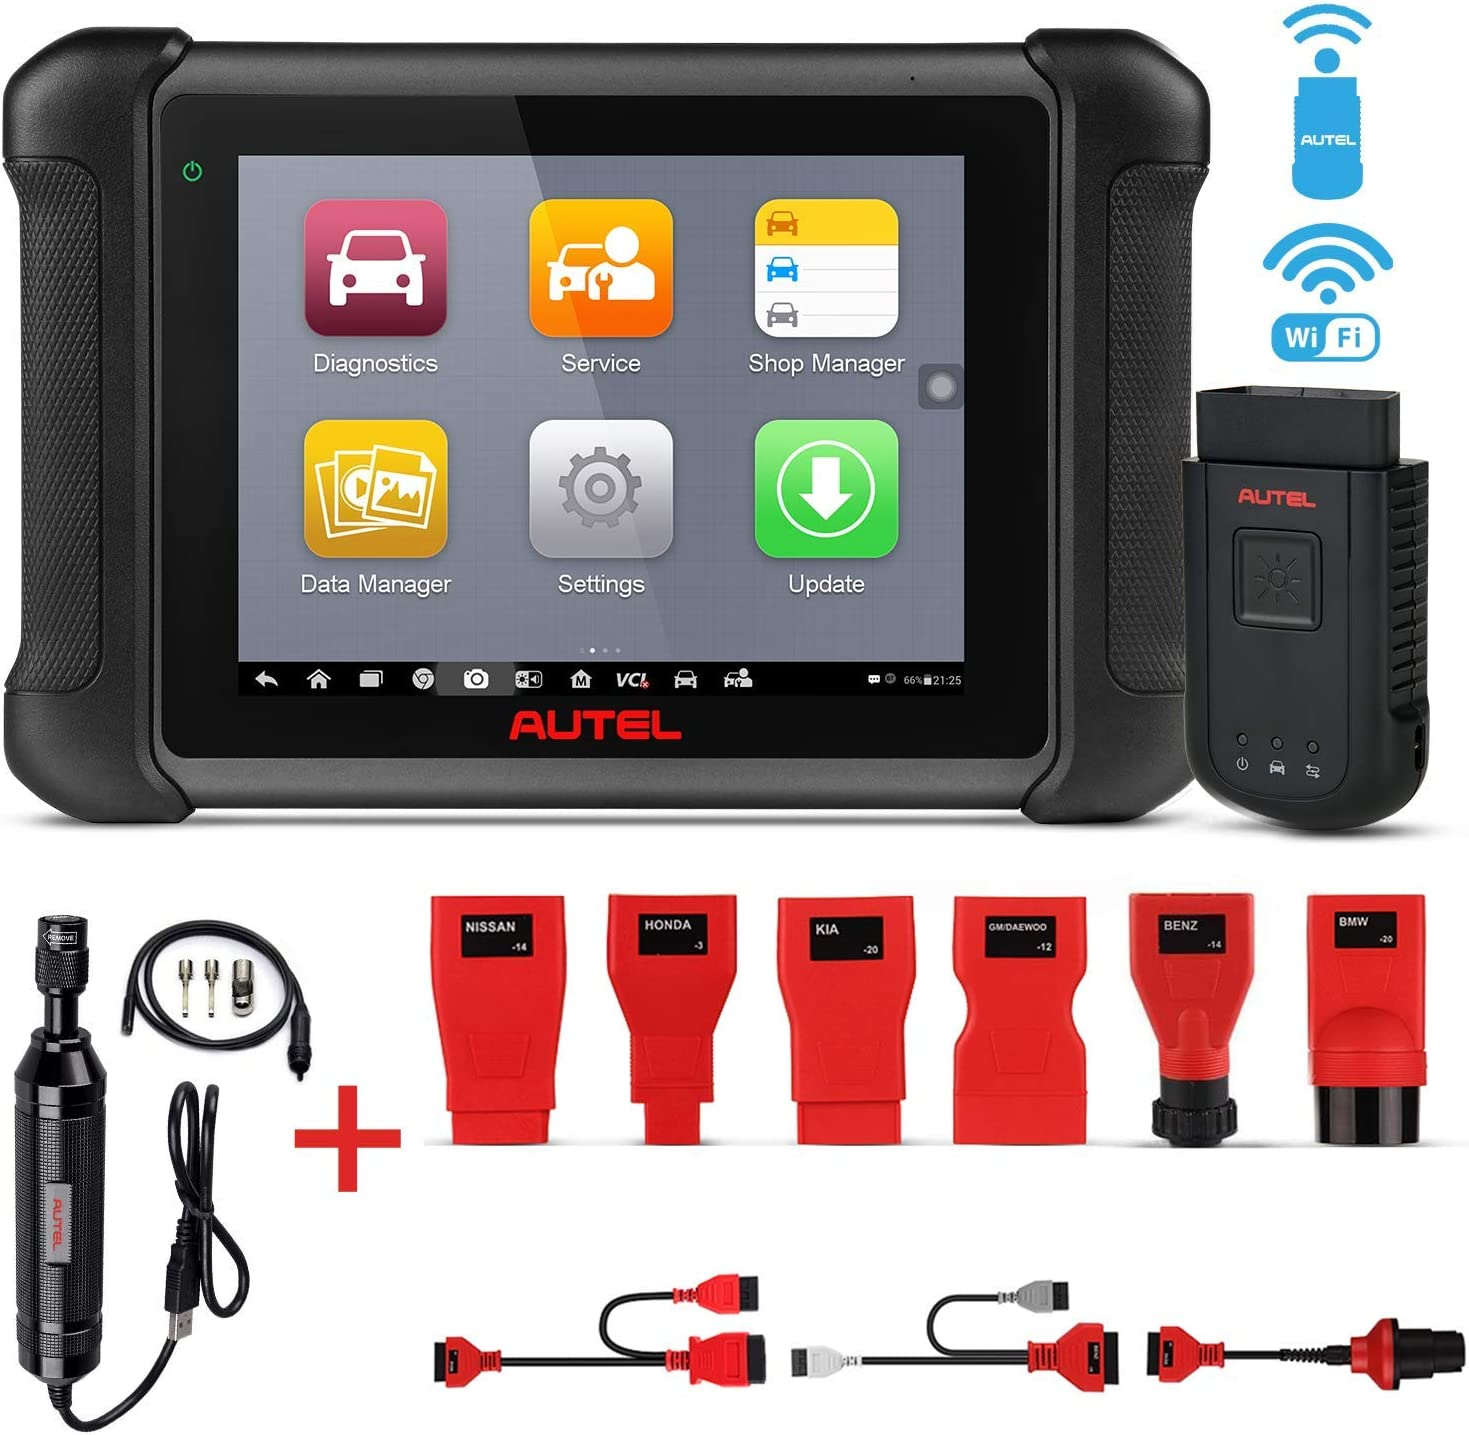 Autel MaxiSys MS906BT Automotive OBD2 Scan Tool Car Diagnostic Scanner with ECU Coding, Active Test, IMMO Keys, OE-Level Diagnosis Oil Reset, EPB, SAS, DPF, TPMS, ABS Bleeding MV108 Add-On